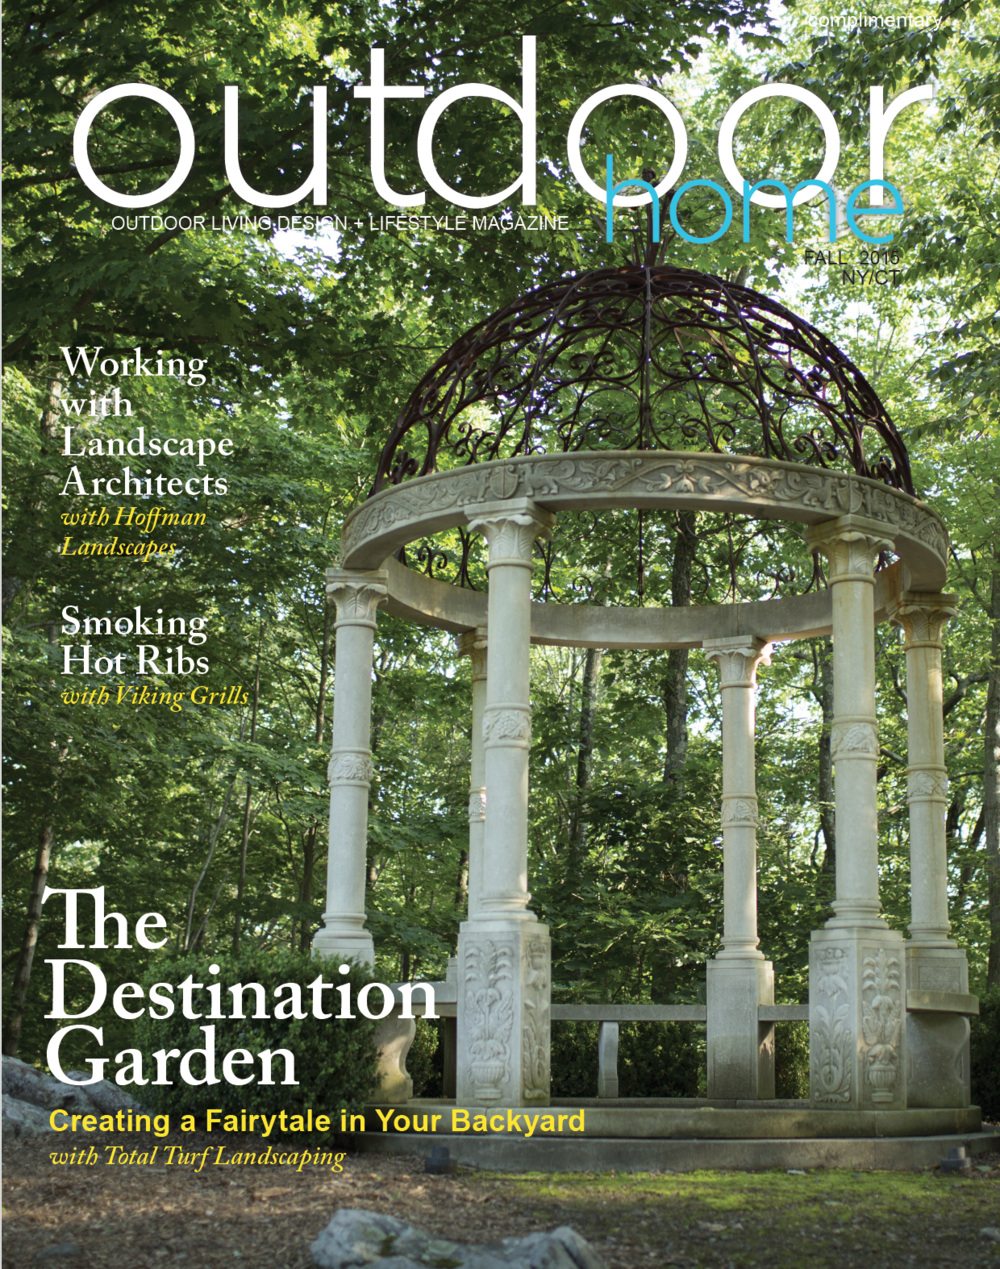 outdoor home magazine fall 2015 issue for westchester, putnam, dutchess, orange, fairfield, & litchfield counties